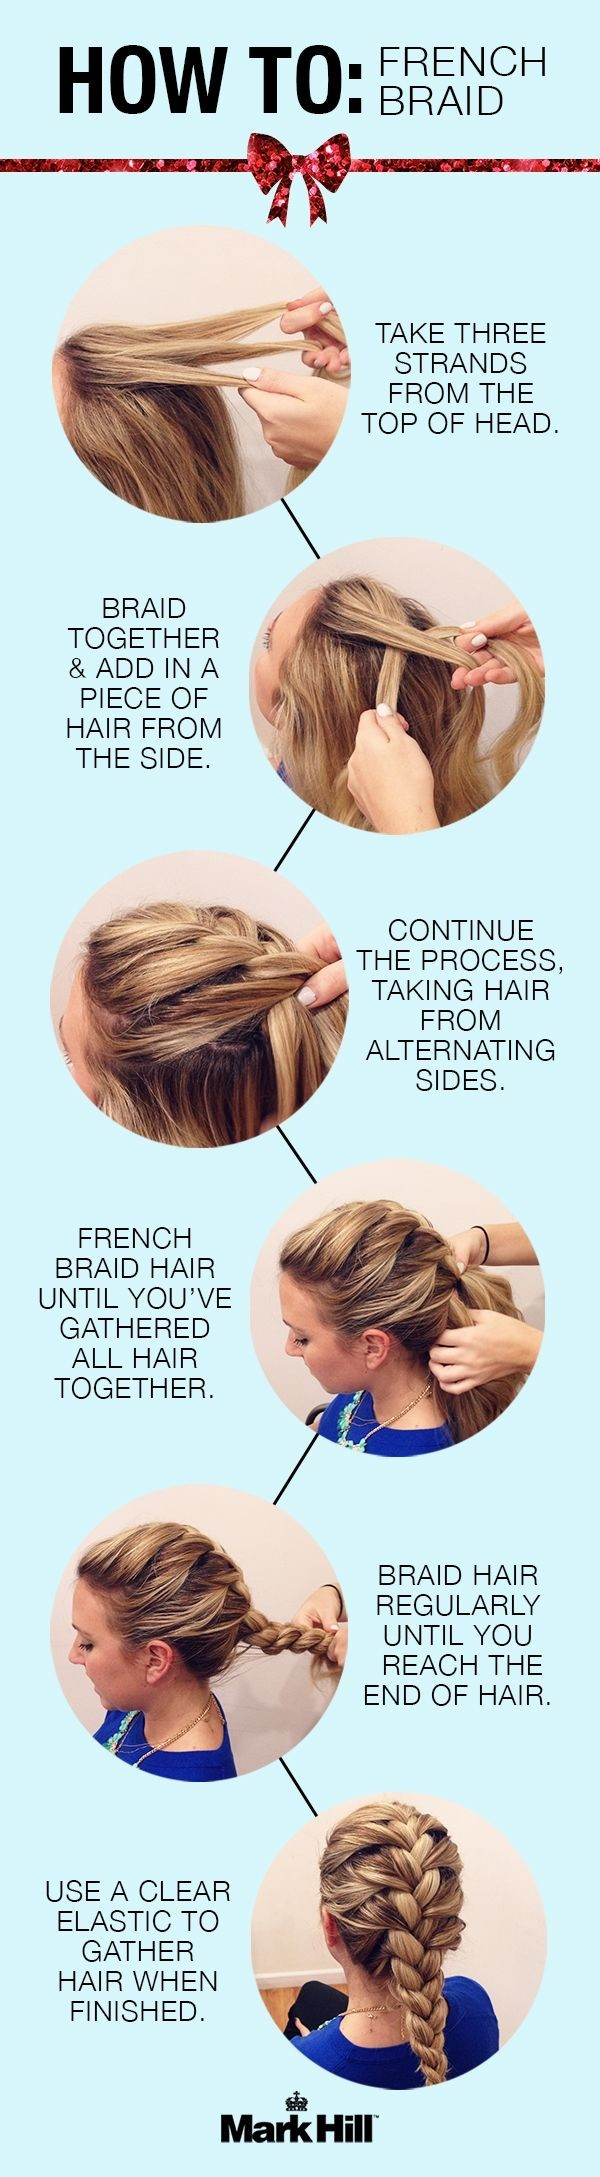 Classic French Braid Hairstyle Tutorial